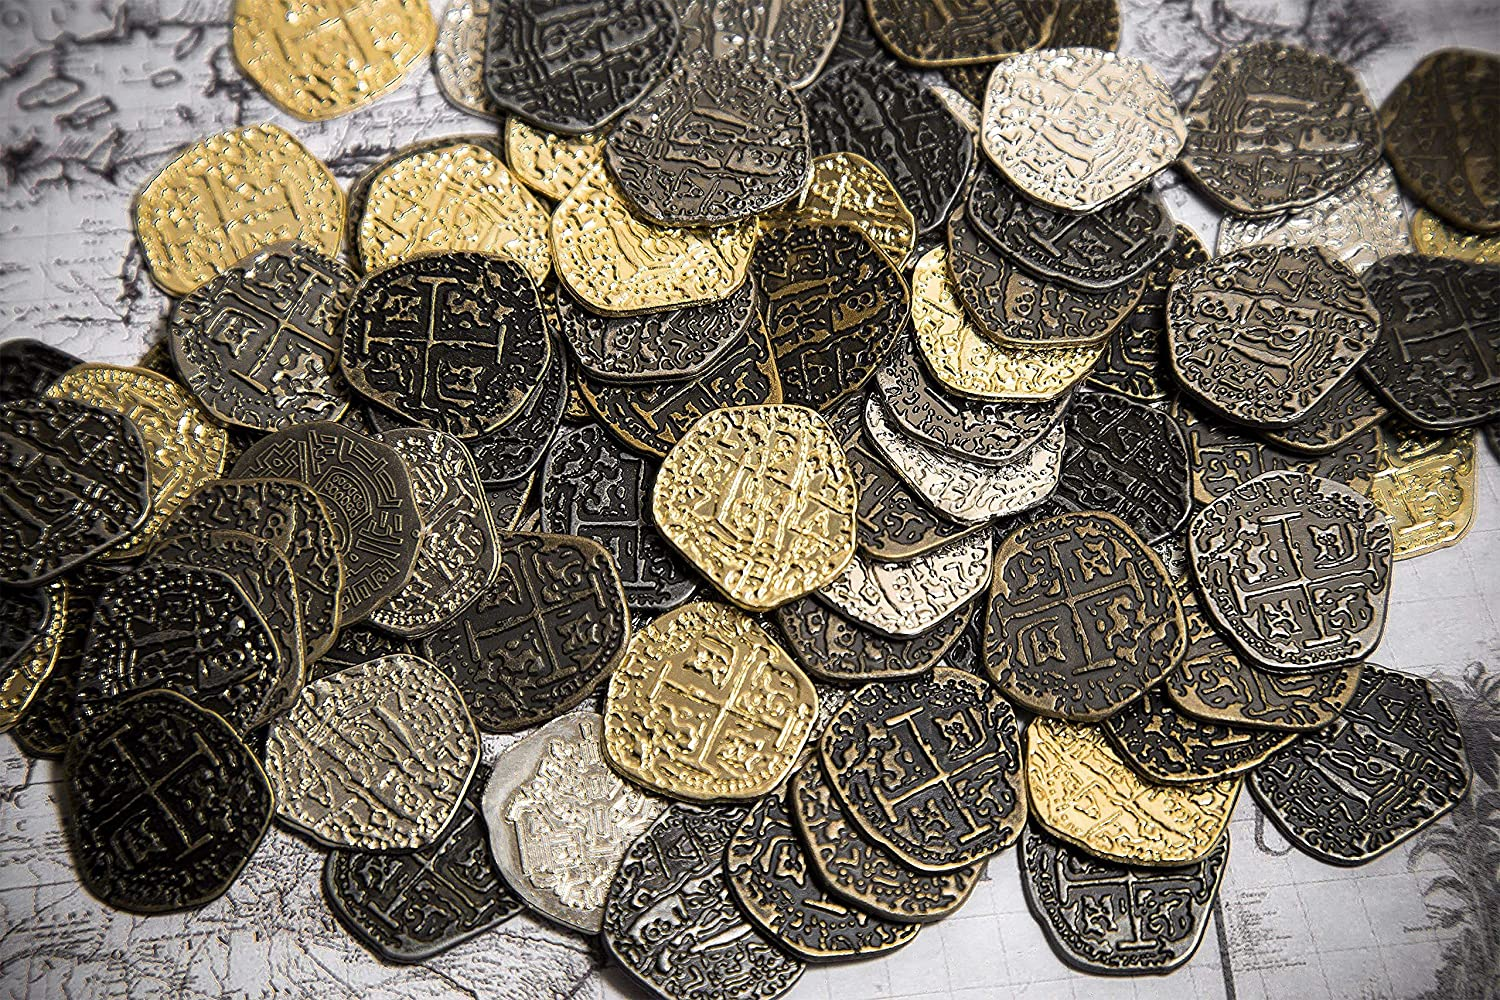 Metal Pirate Coins -100 Gold and Silver Spanish Doubloon Replicas - Fantasy Metal Coin Pirate Treasure - Gold, Silver, Antique and Rustic Style Finishes by Beverly Oaks